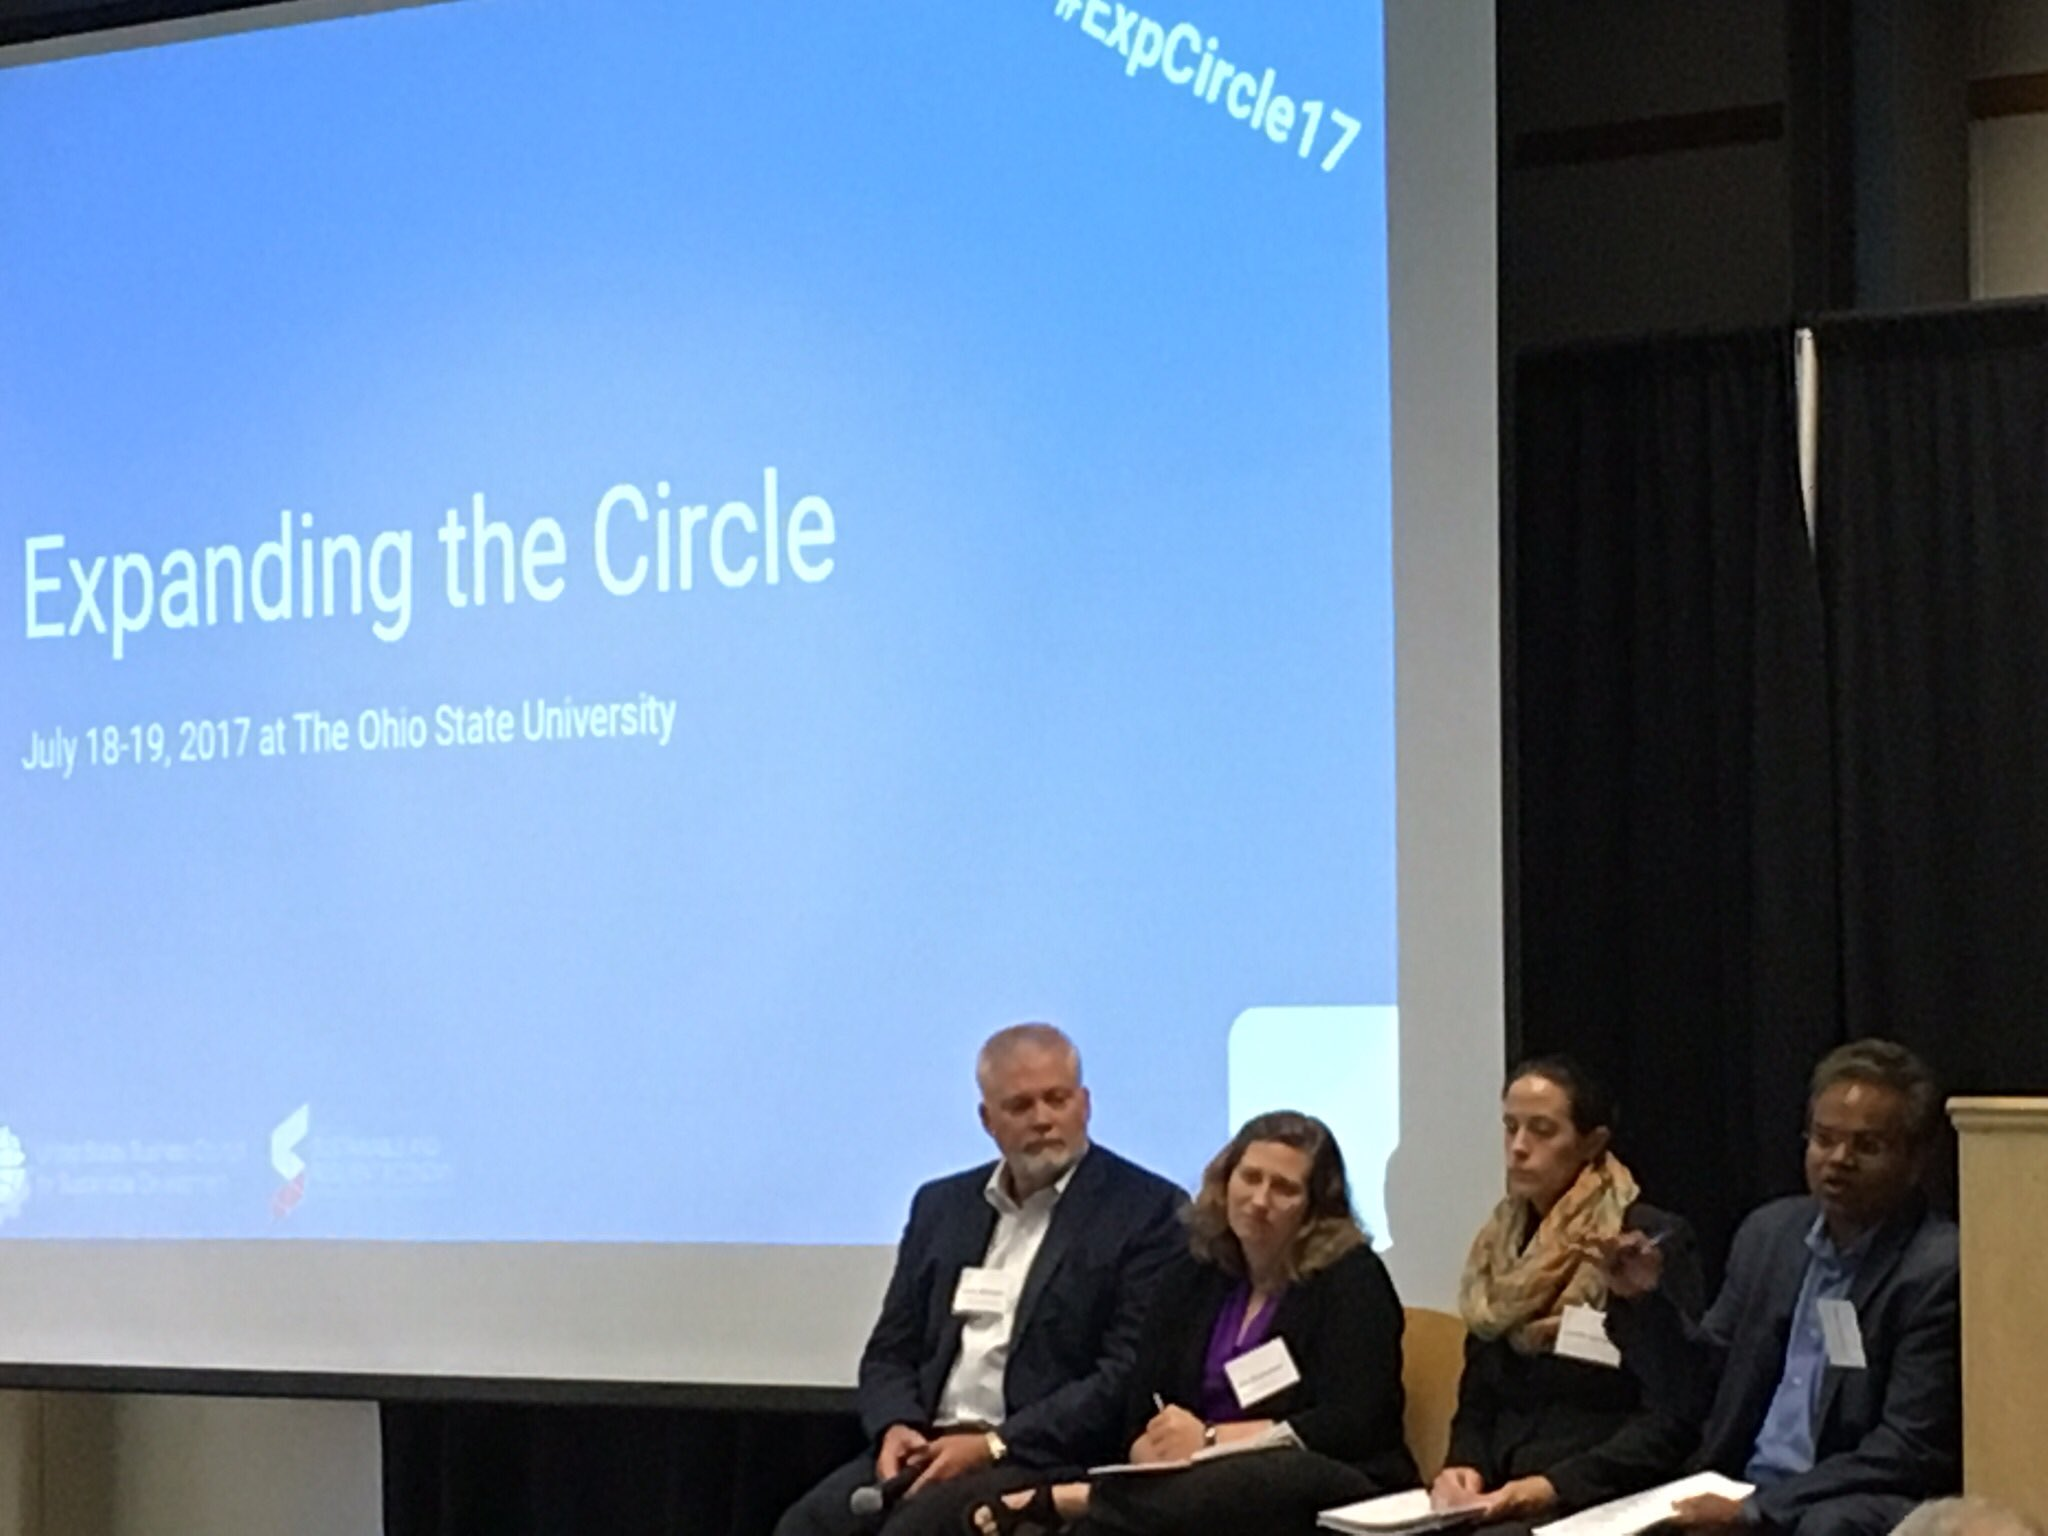 Public-private partnerships are essential - and growing - in Circular Economy. Leadership from @USBCSD @wef @WWF @USChamber #ExpCircle17 https://t.co/HHHnGbiINv